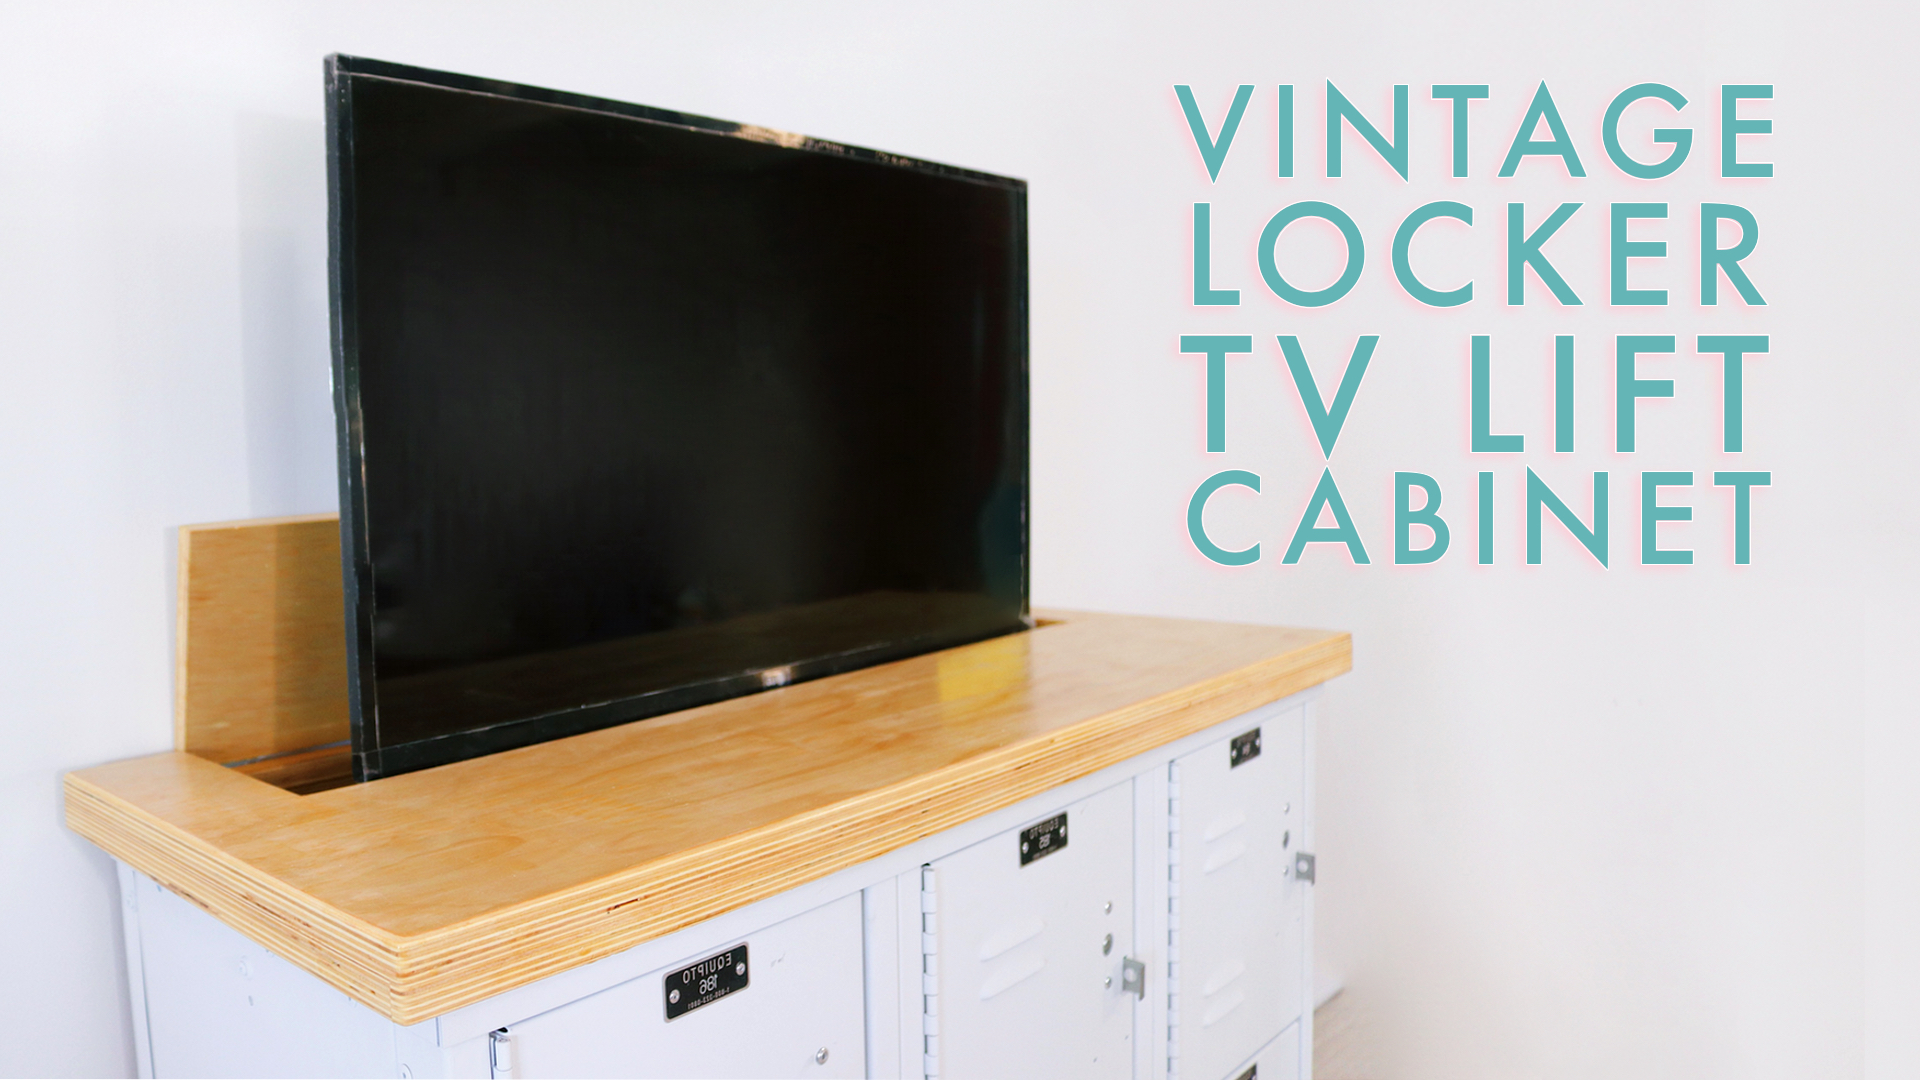 Vintage locker turned into a TV lift cabinet / media console by: Mike Montgomery | Modern Builds